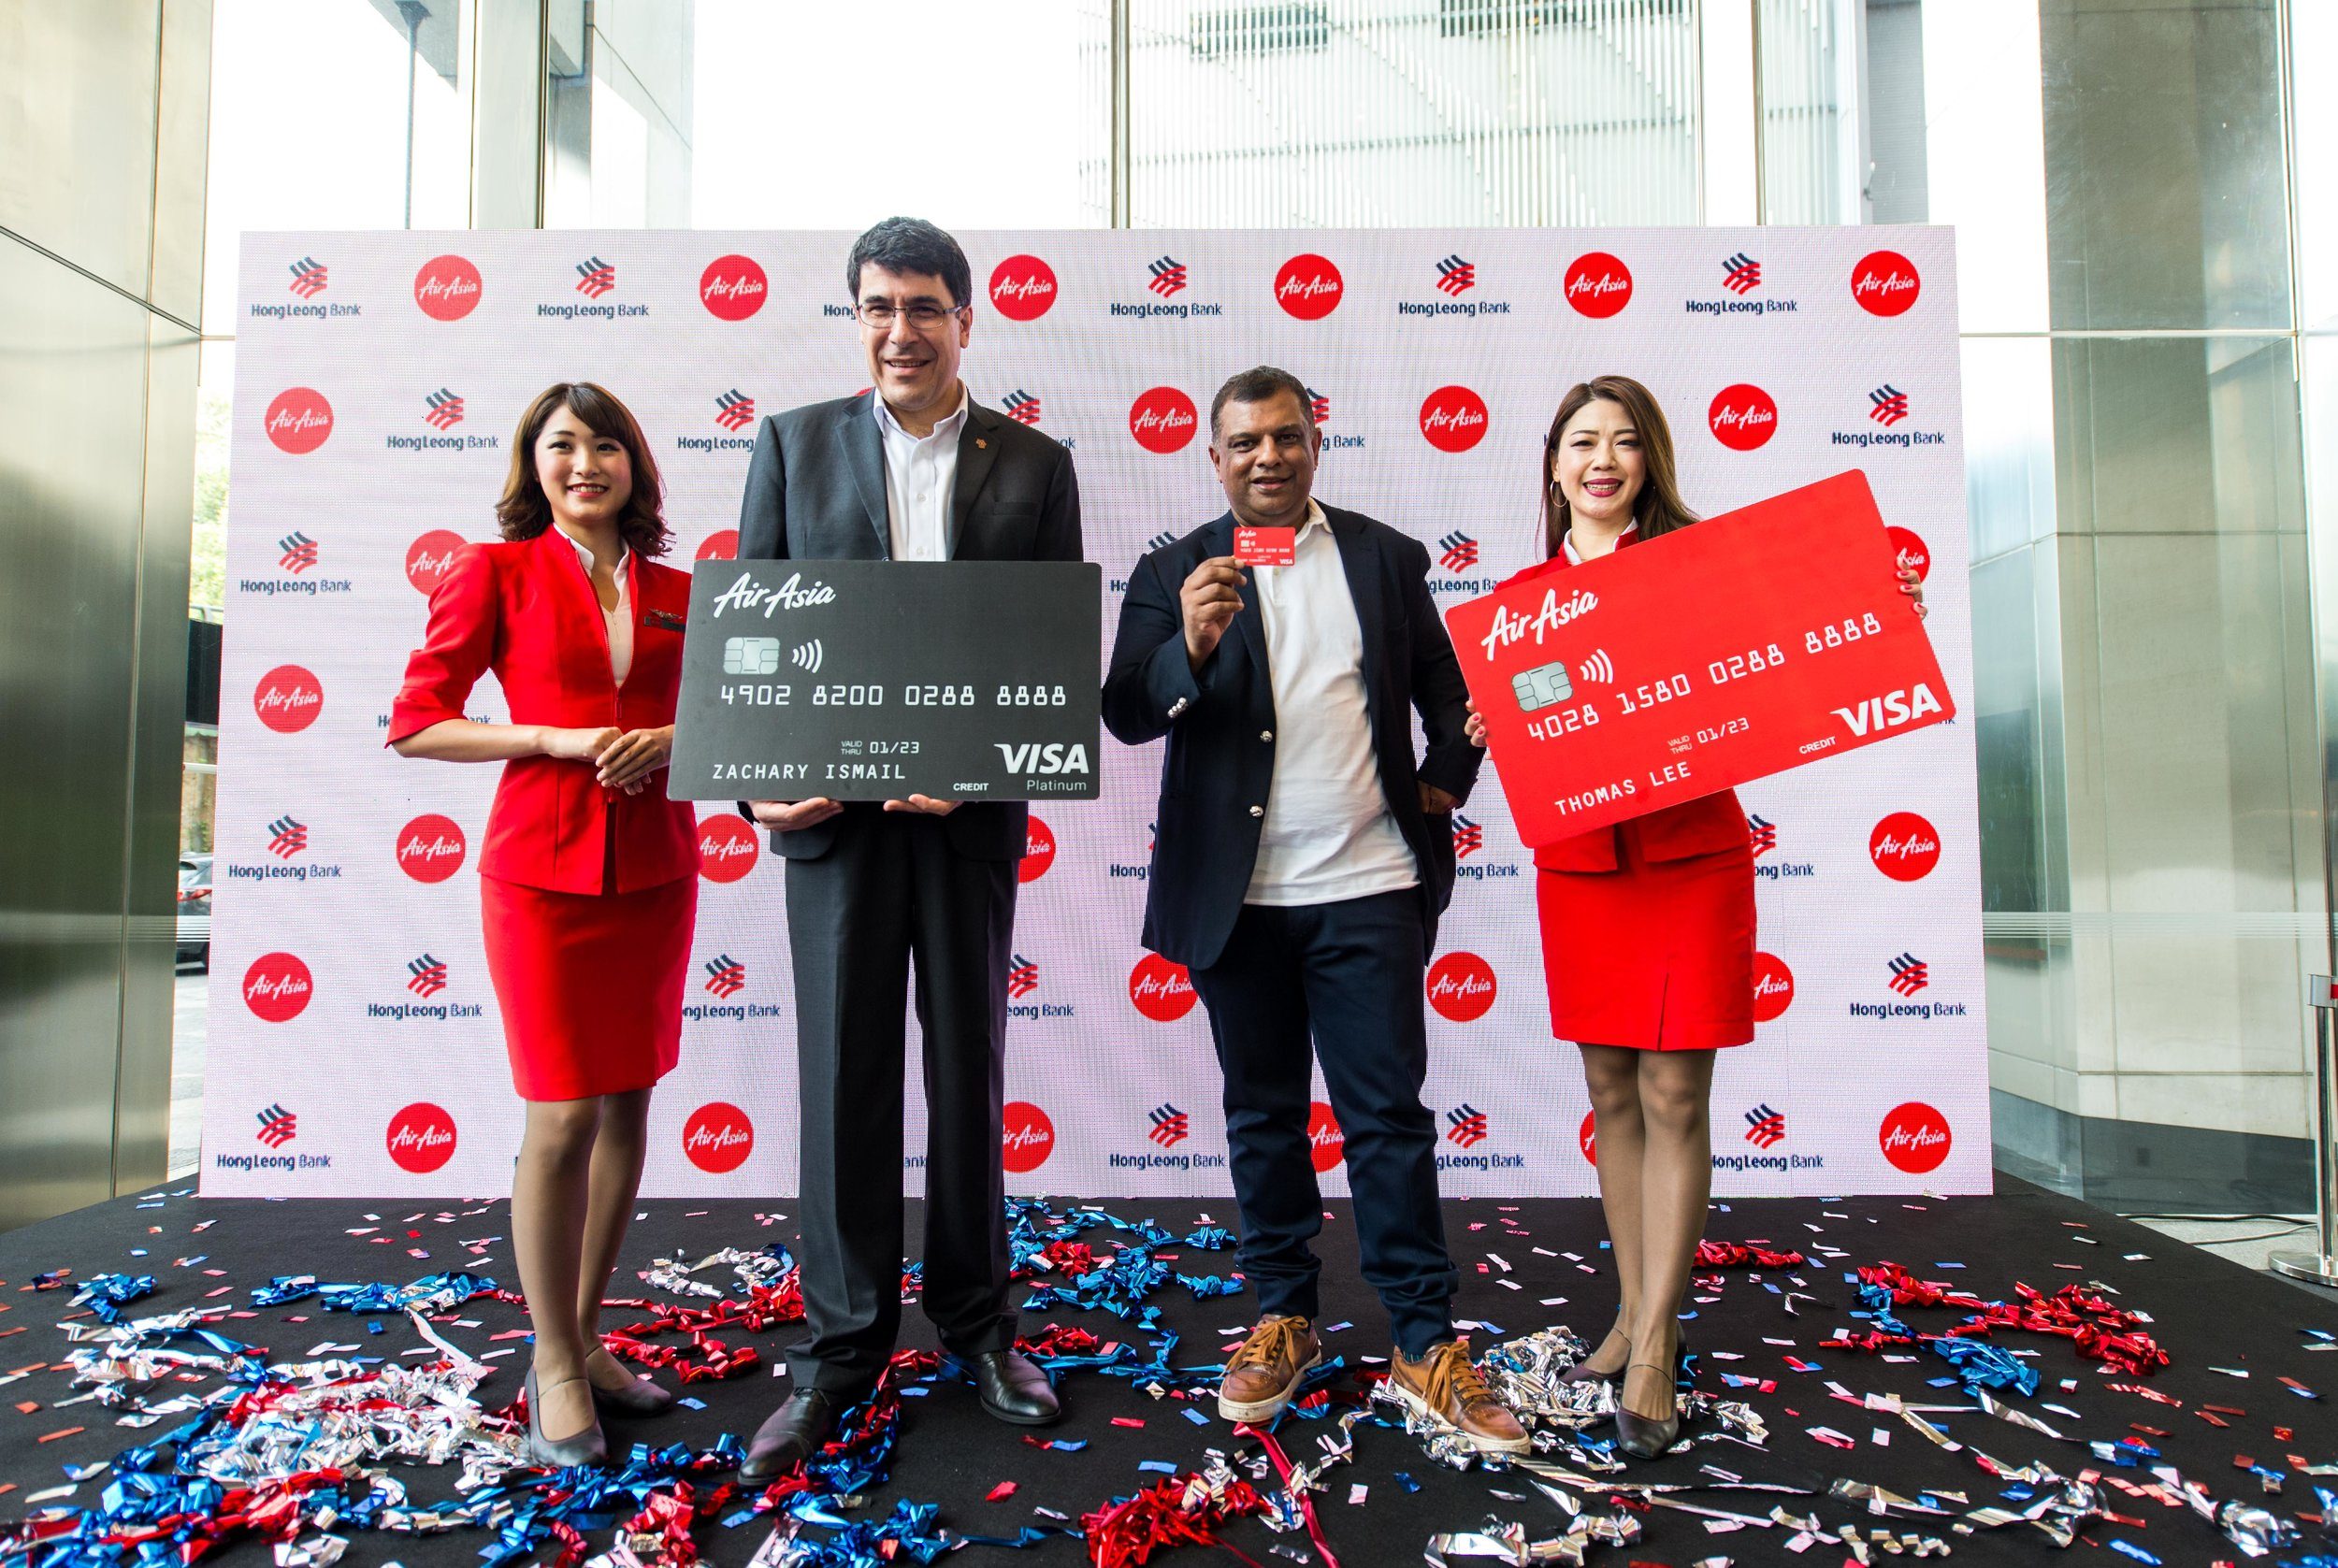 Hong Leong Bank Group Managing Director and CEO, Domenic Fuda (second from left) and AirAsia Group CEO, Tony Fernandes (third from left) unveiling the new AirAsia Hong Leong Bank Credit Card.